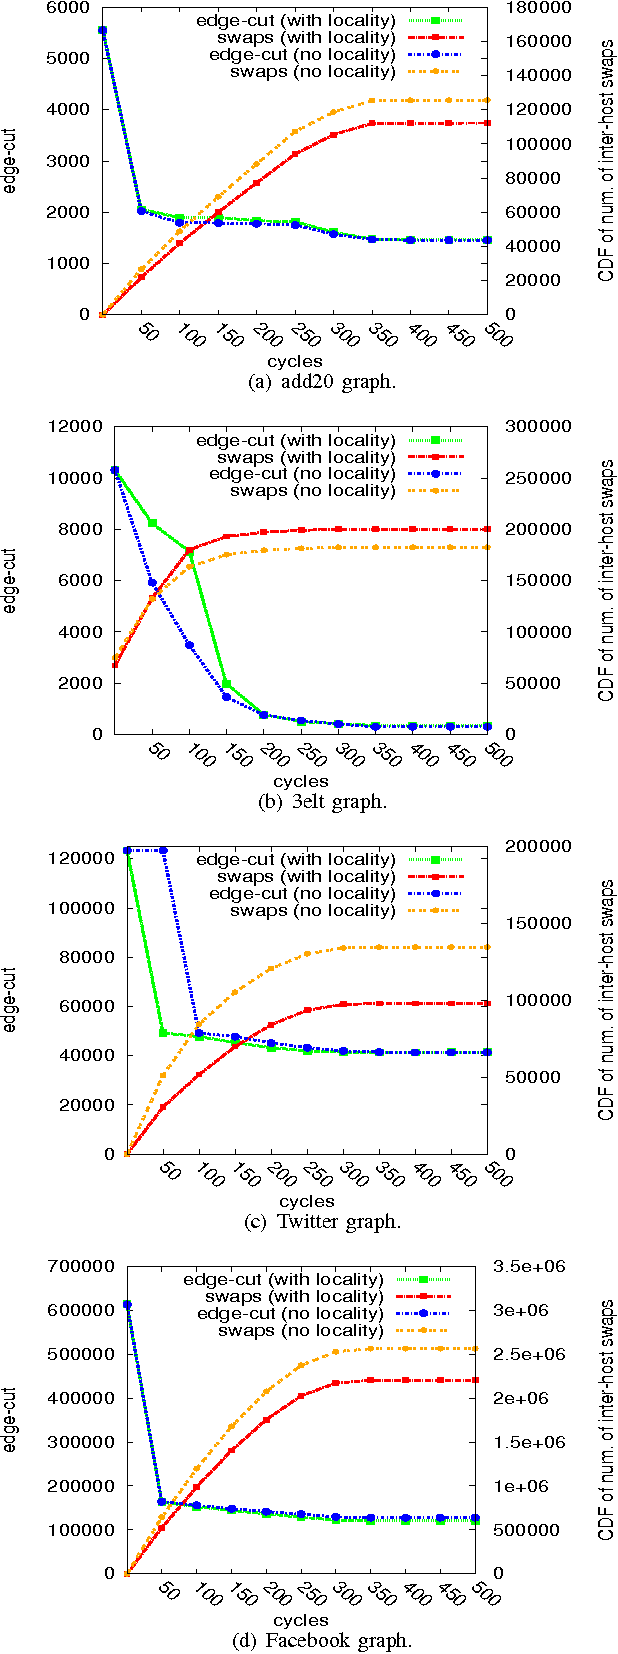 Figure 4. Evolution of edge-cut and swaps over time.